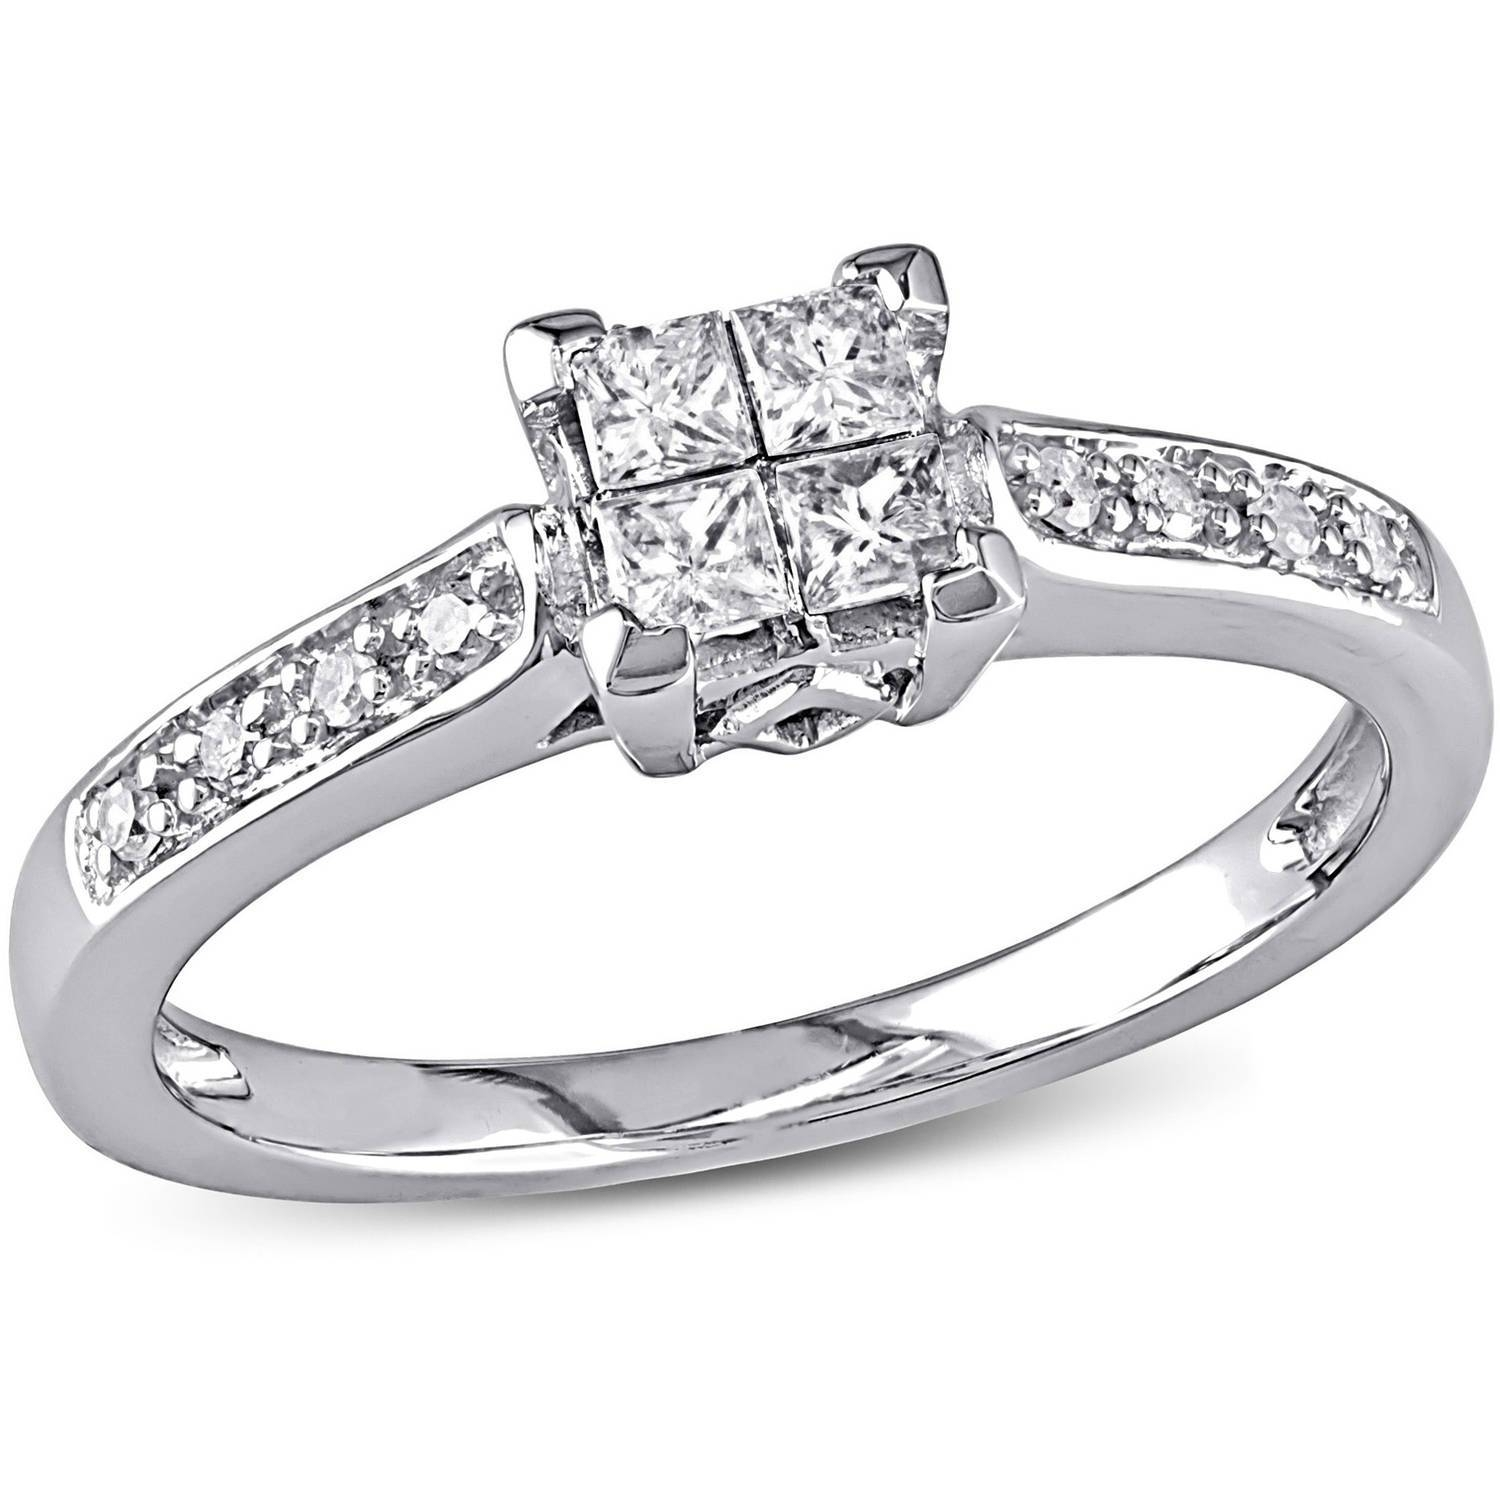 Walmart Diamond Rings | Wedding, Promise, Diamond, Engagement Throughout Walmart White Gold Wedding Bands (View 9 of 15)